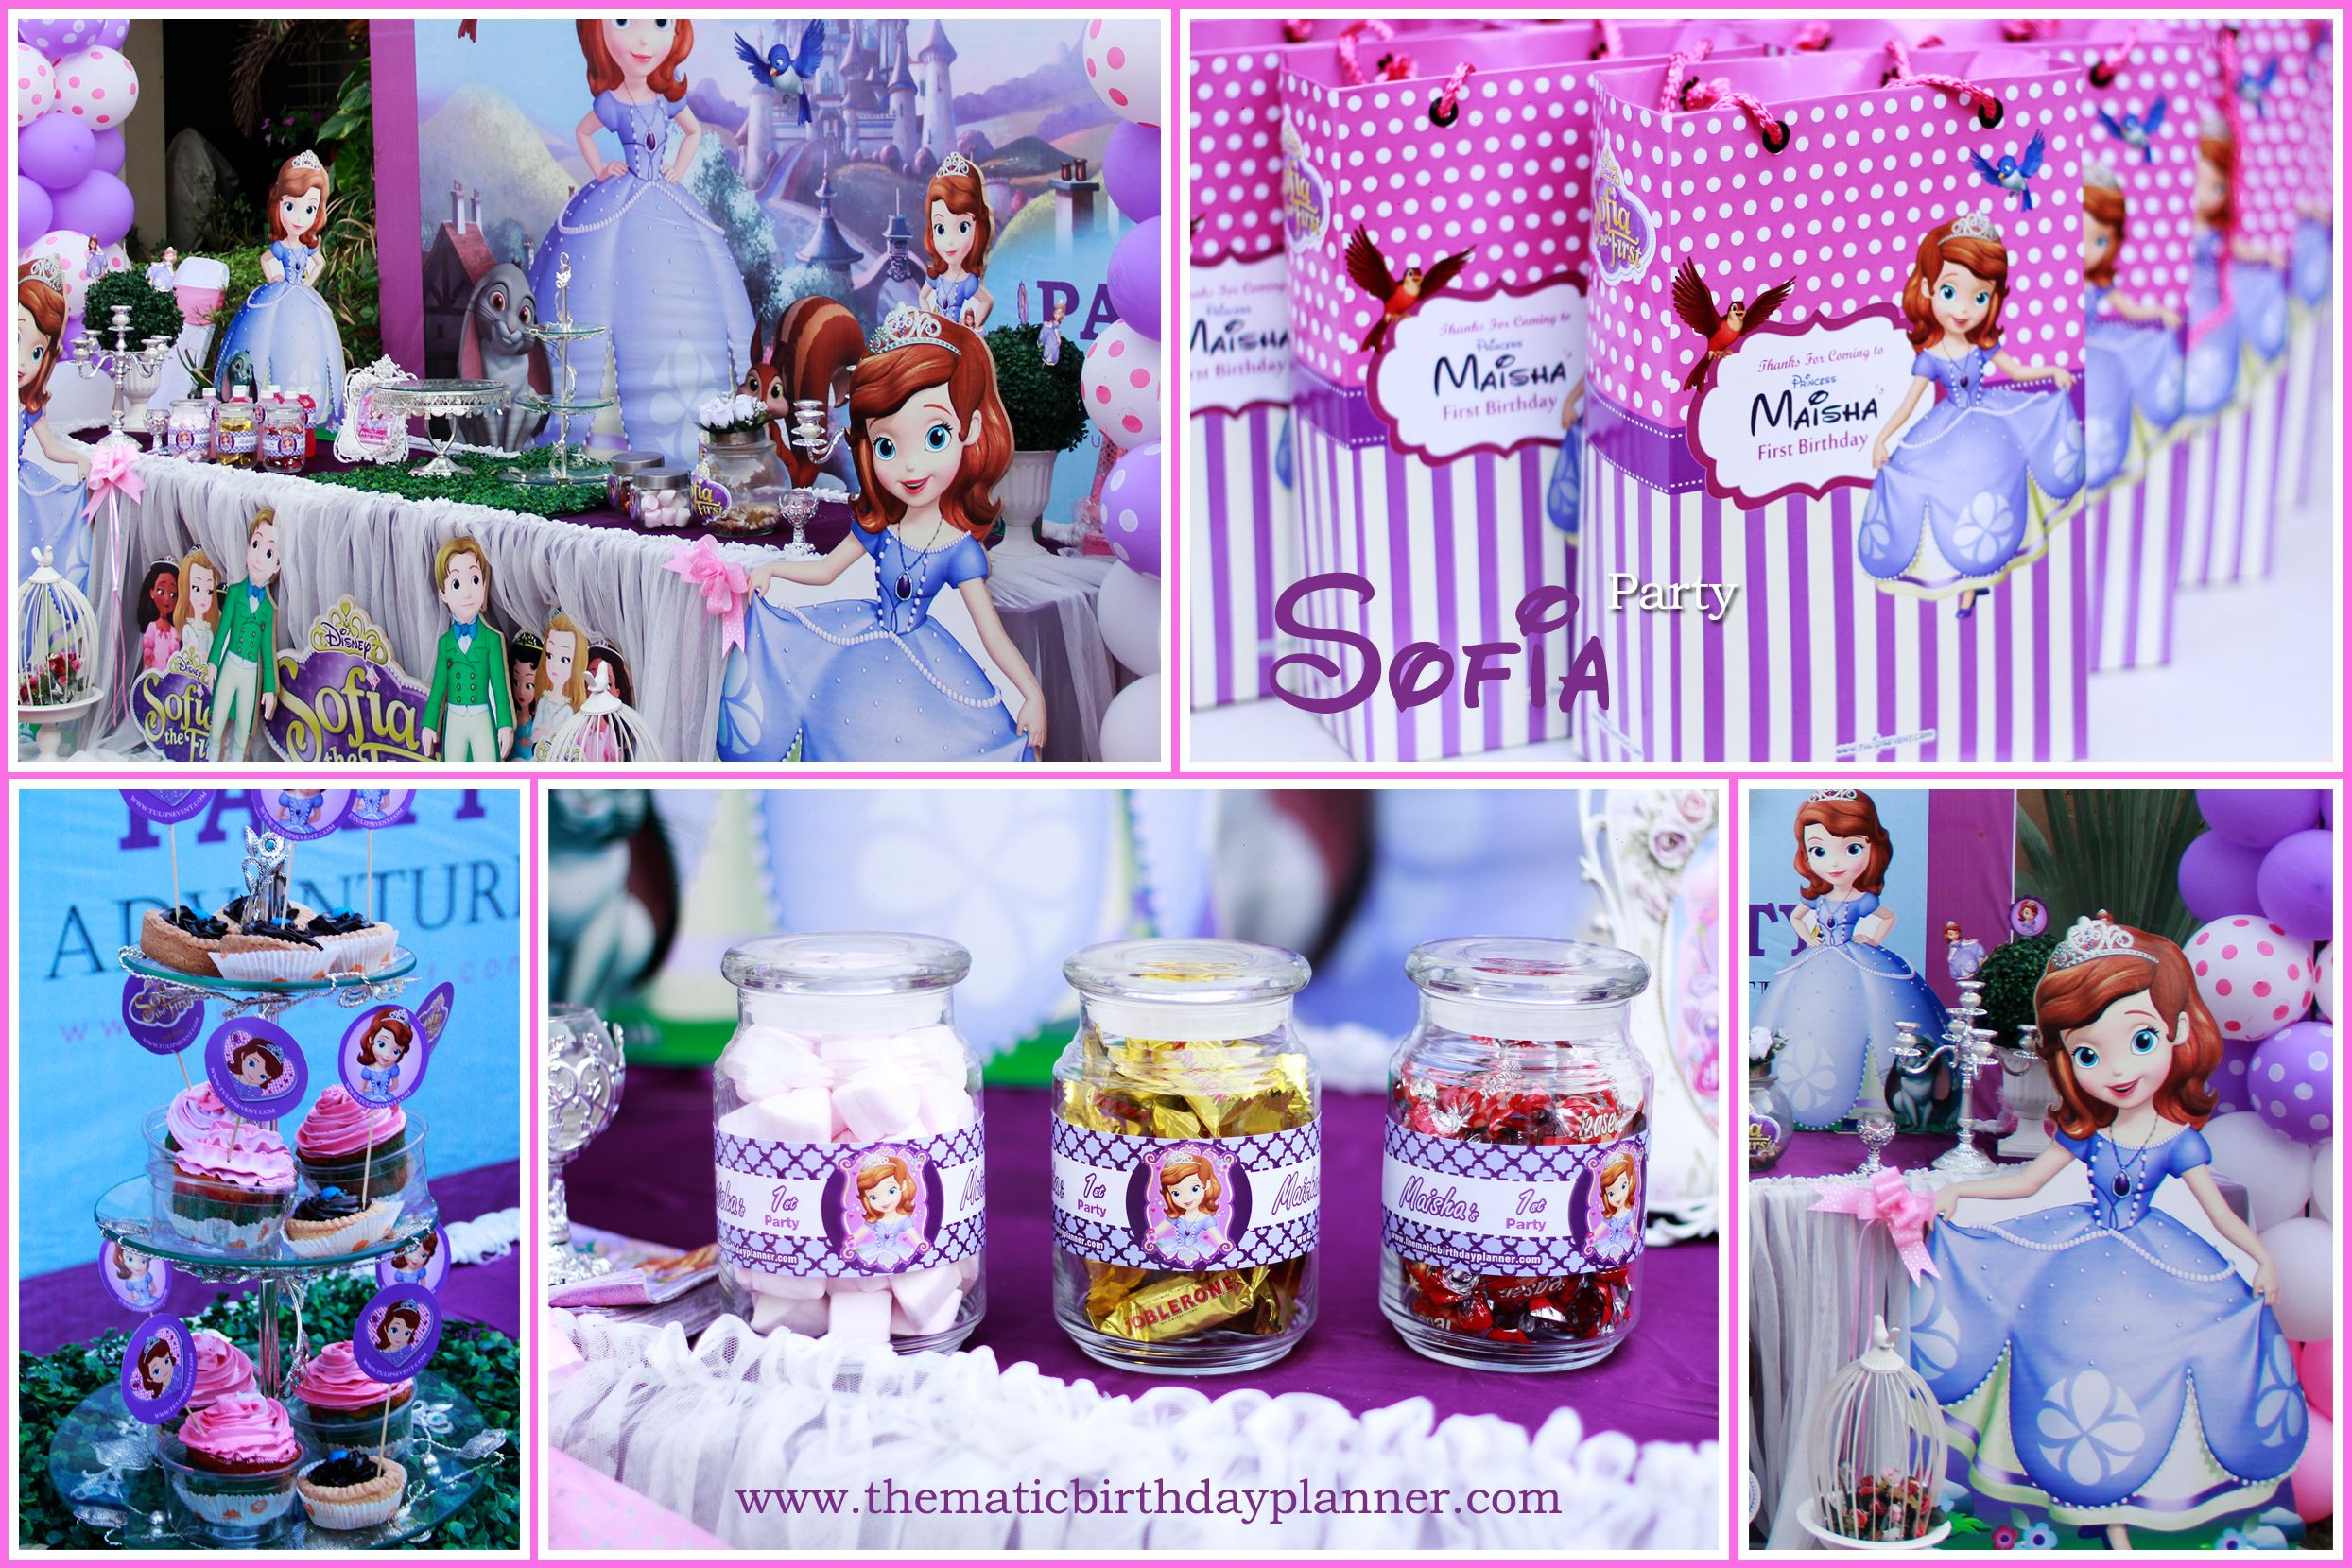 Best ideas about Best Birthday Party Ideas . Save or Pin Find the best Birthday party theme ideas fro Sofia The Now.